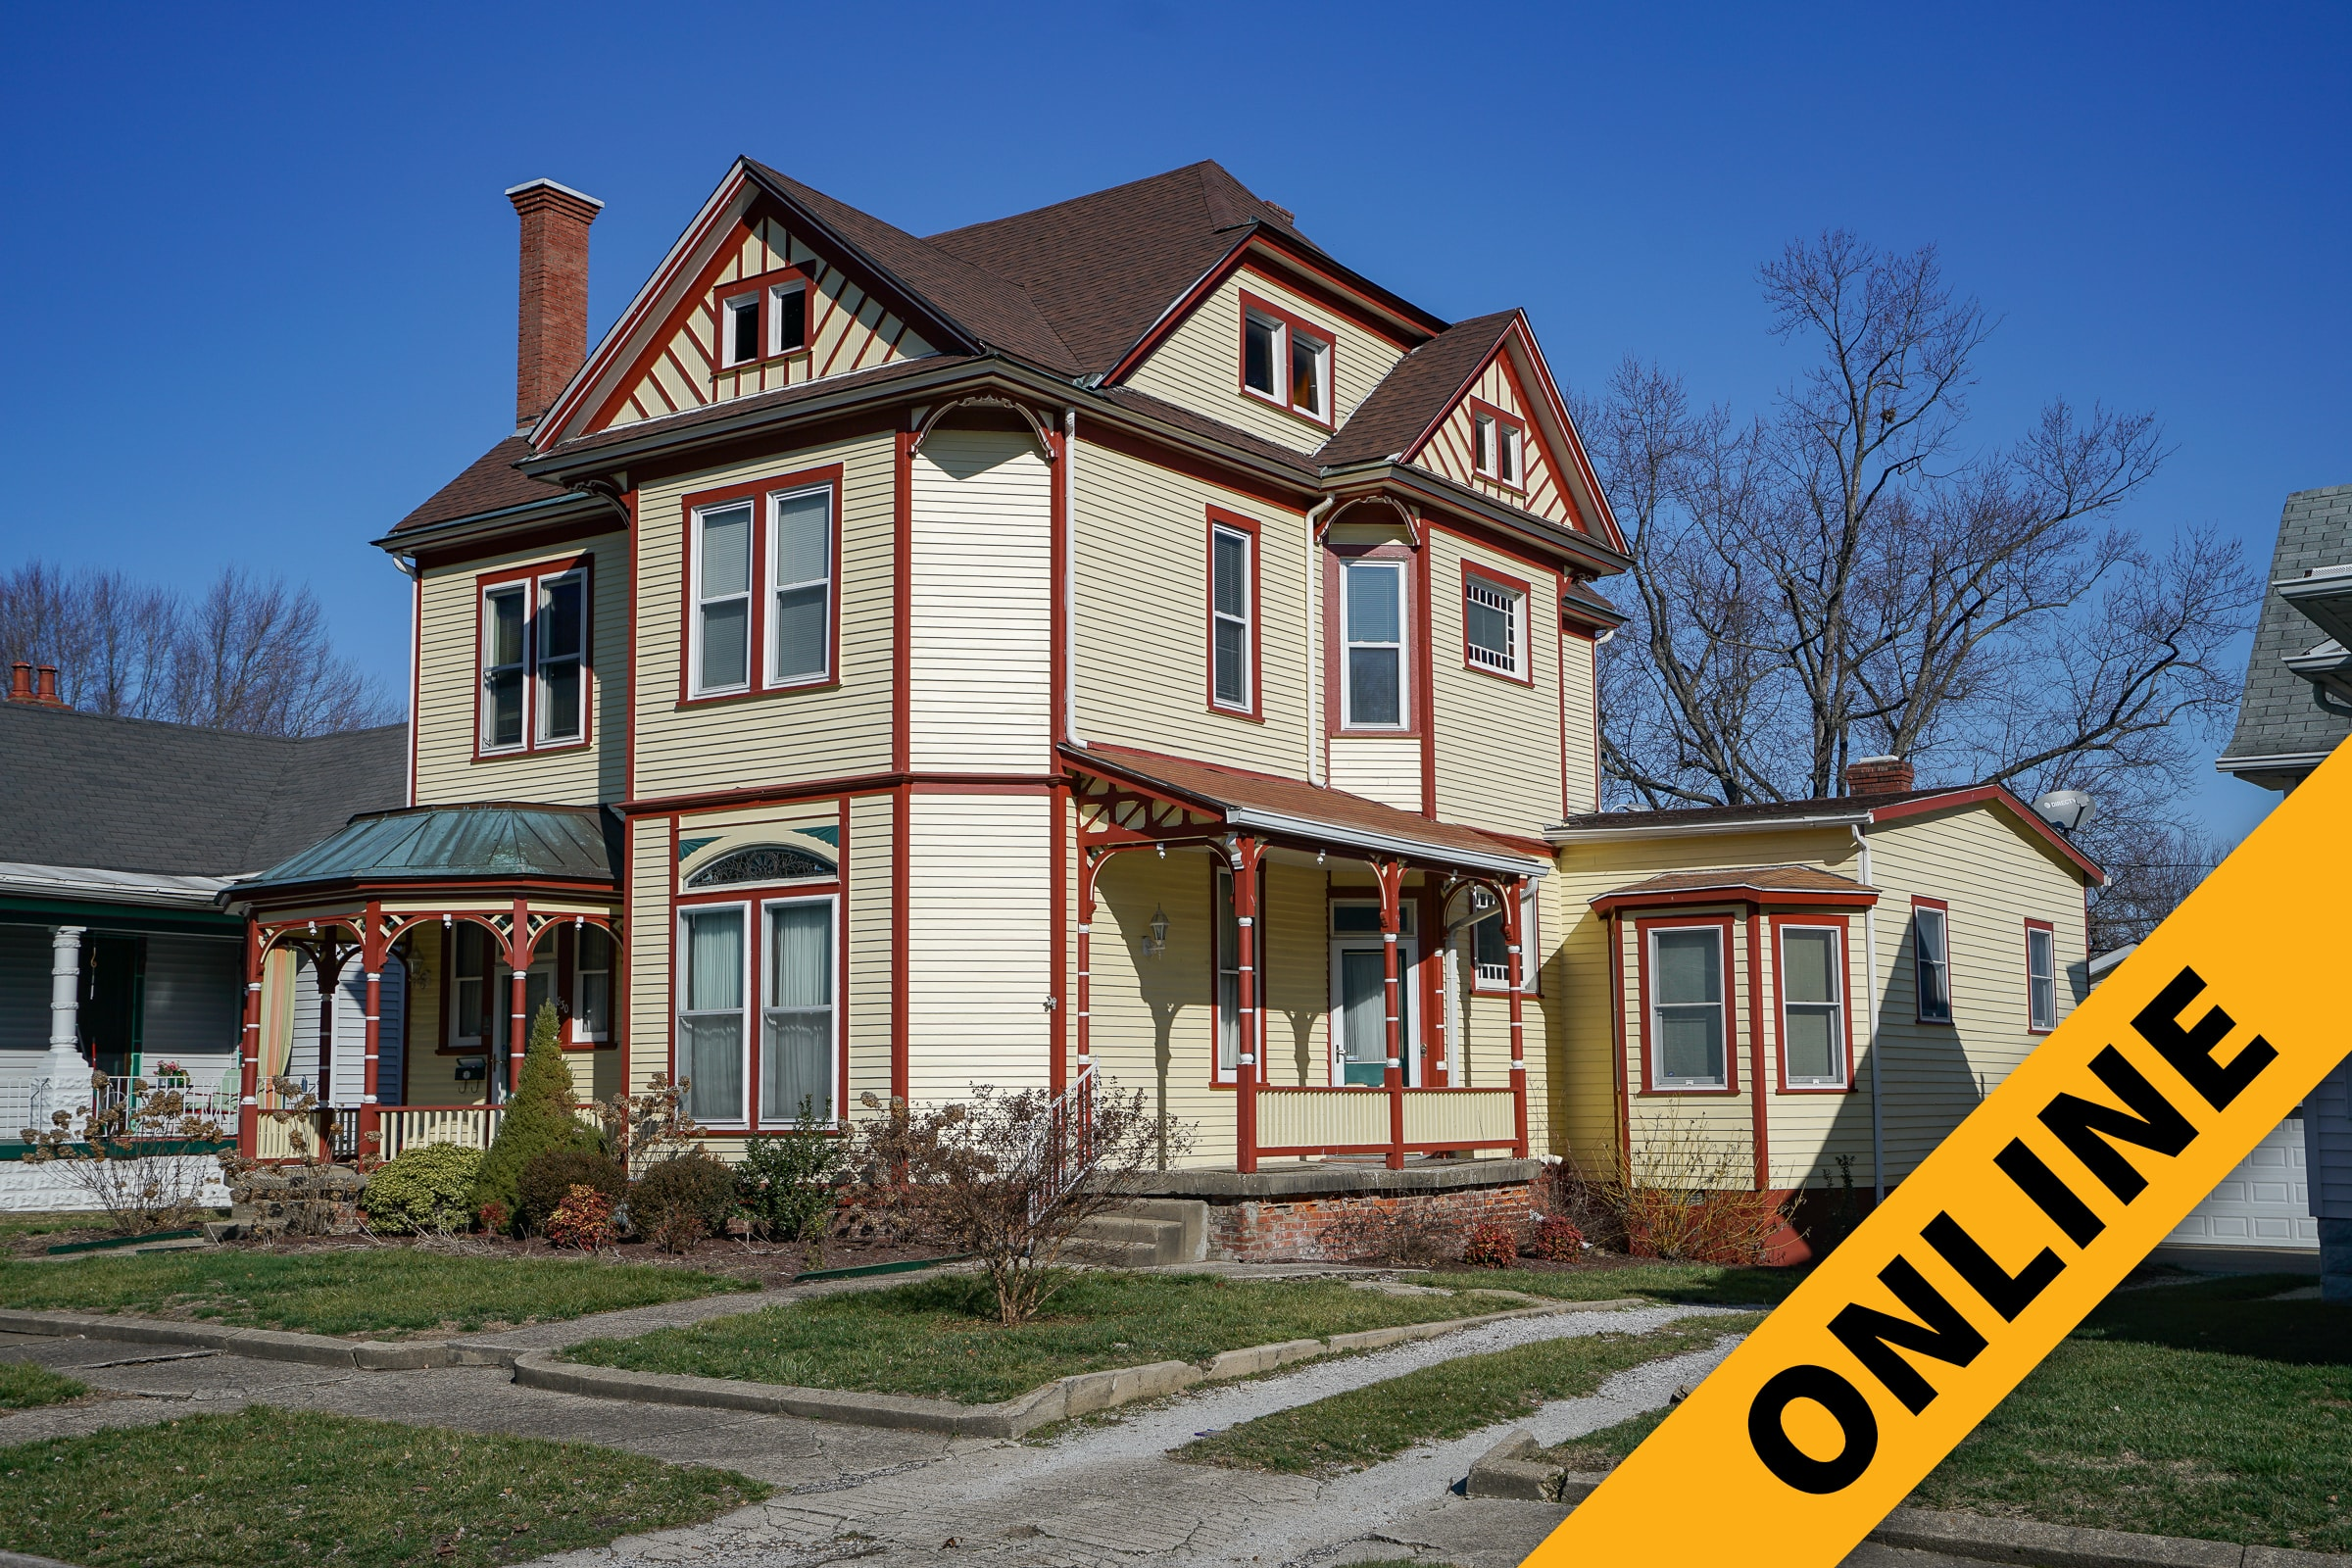 Historic Cedar Bough Place Online Auction